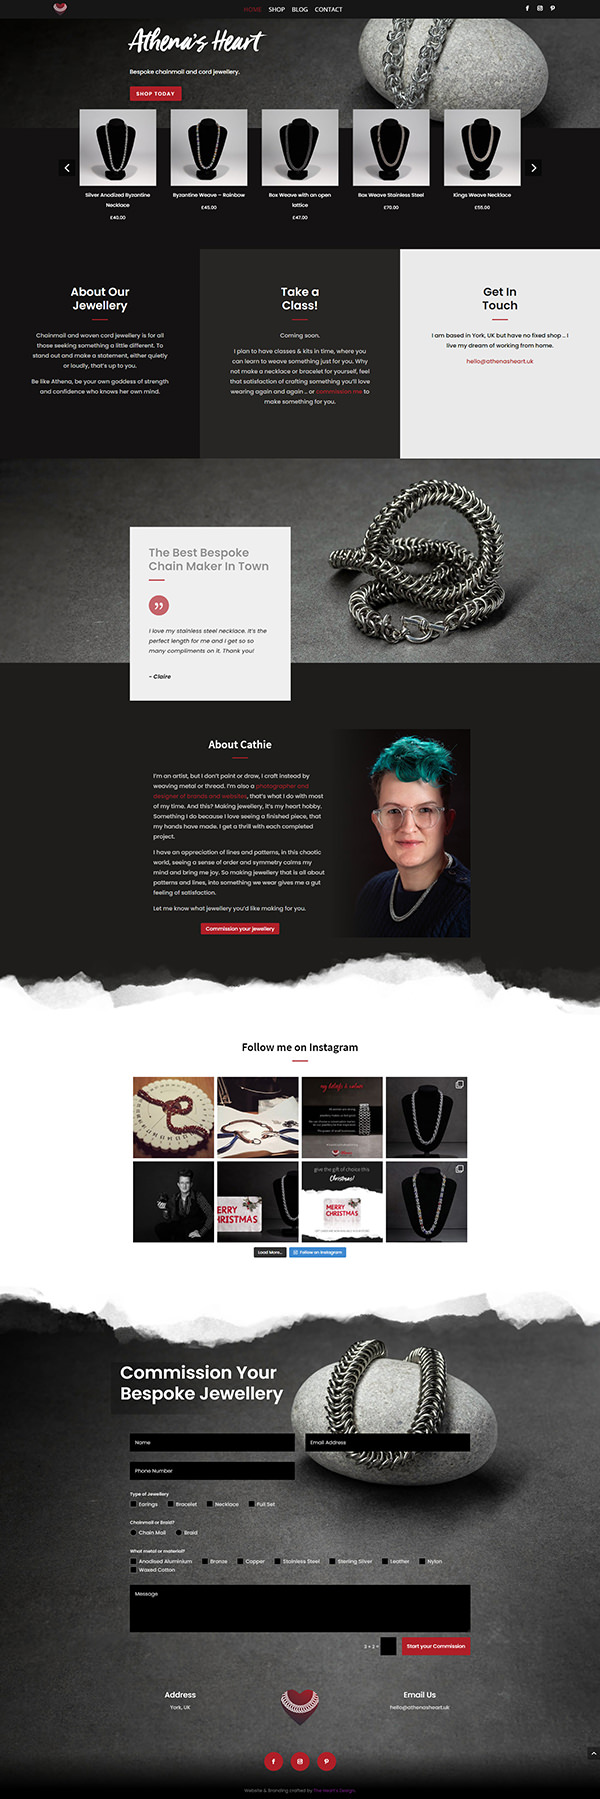 Athena's Heart - Home Page Design